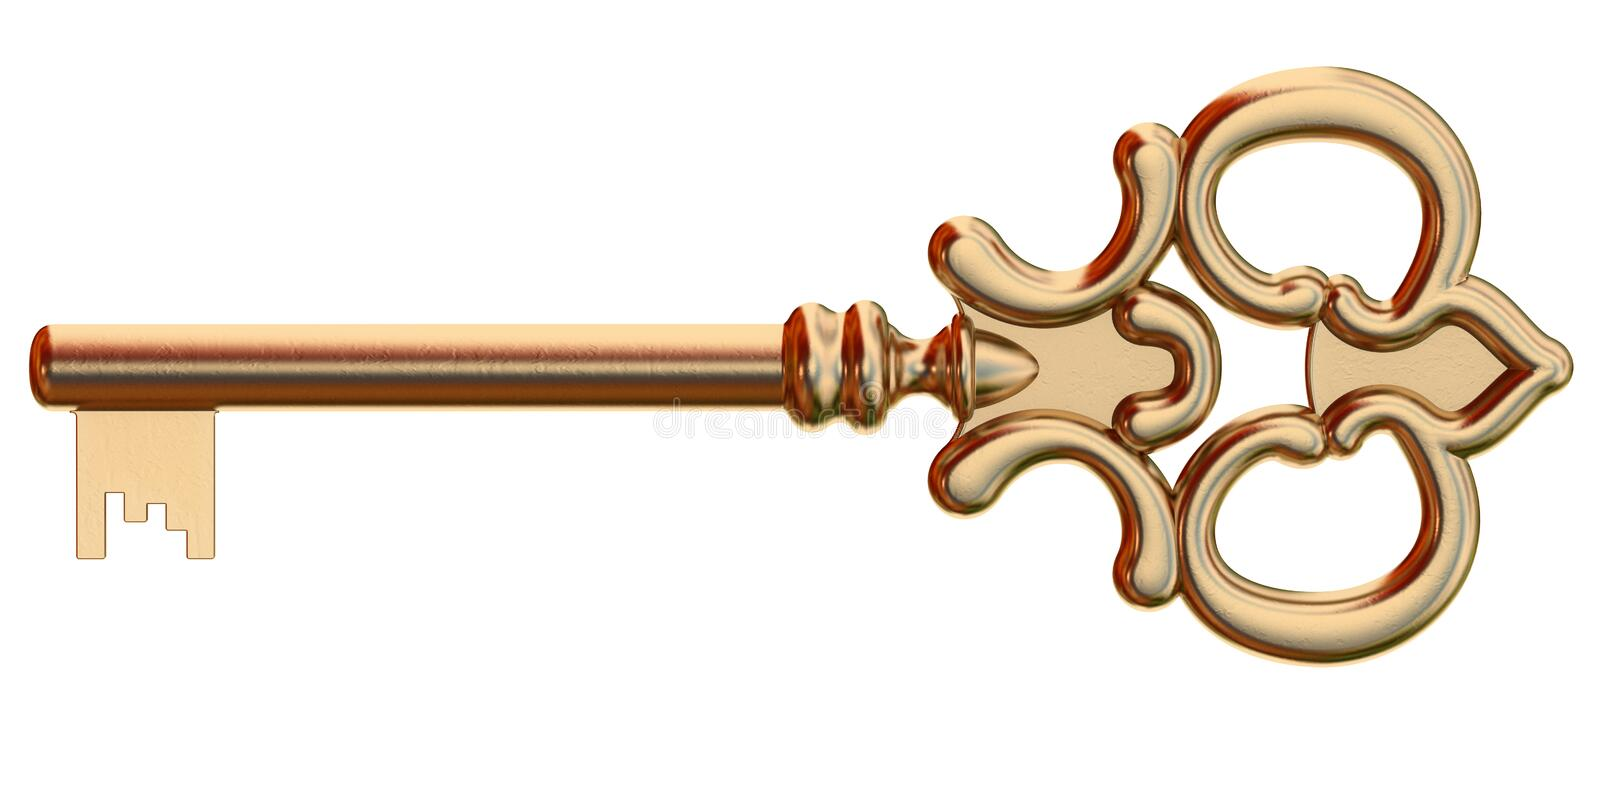 Golden key isolated vector illustration